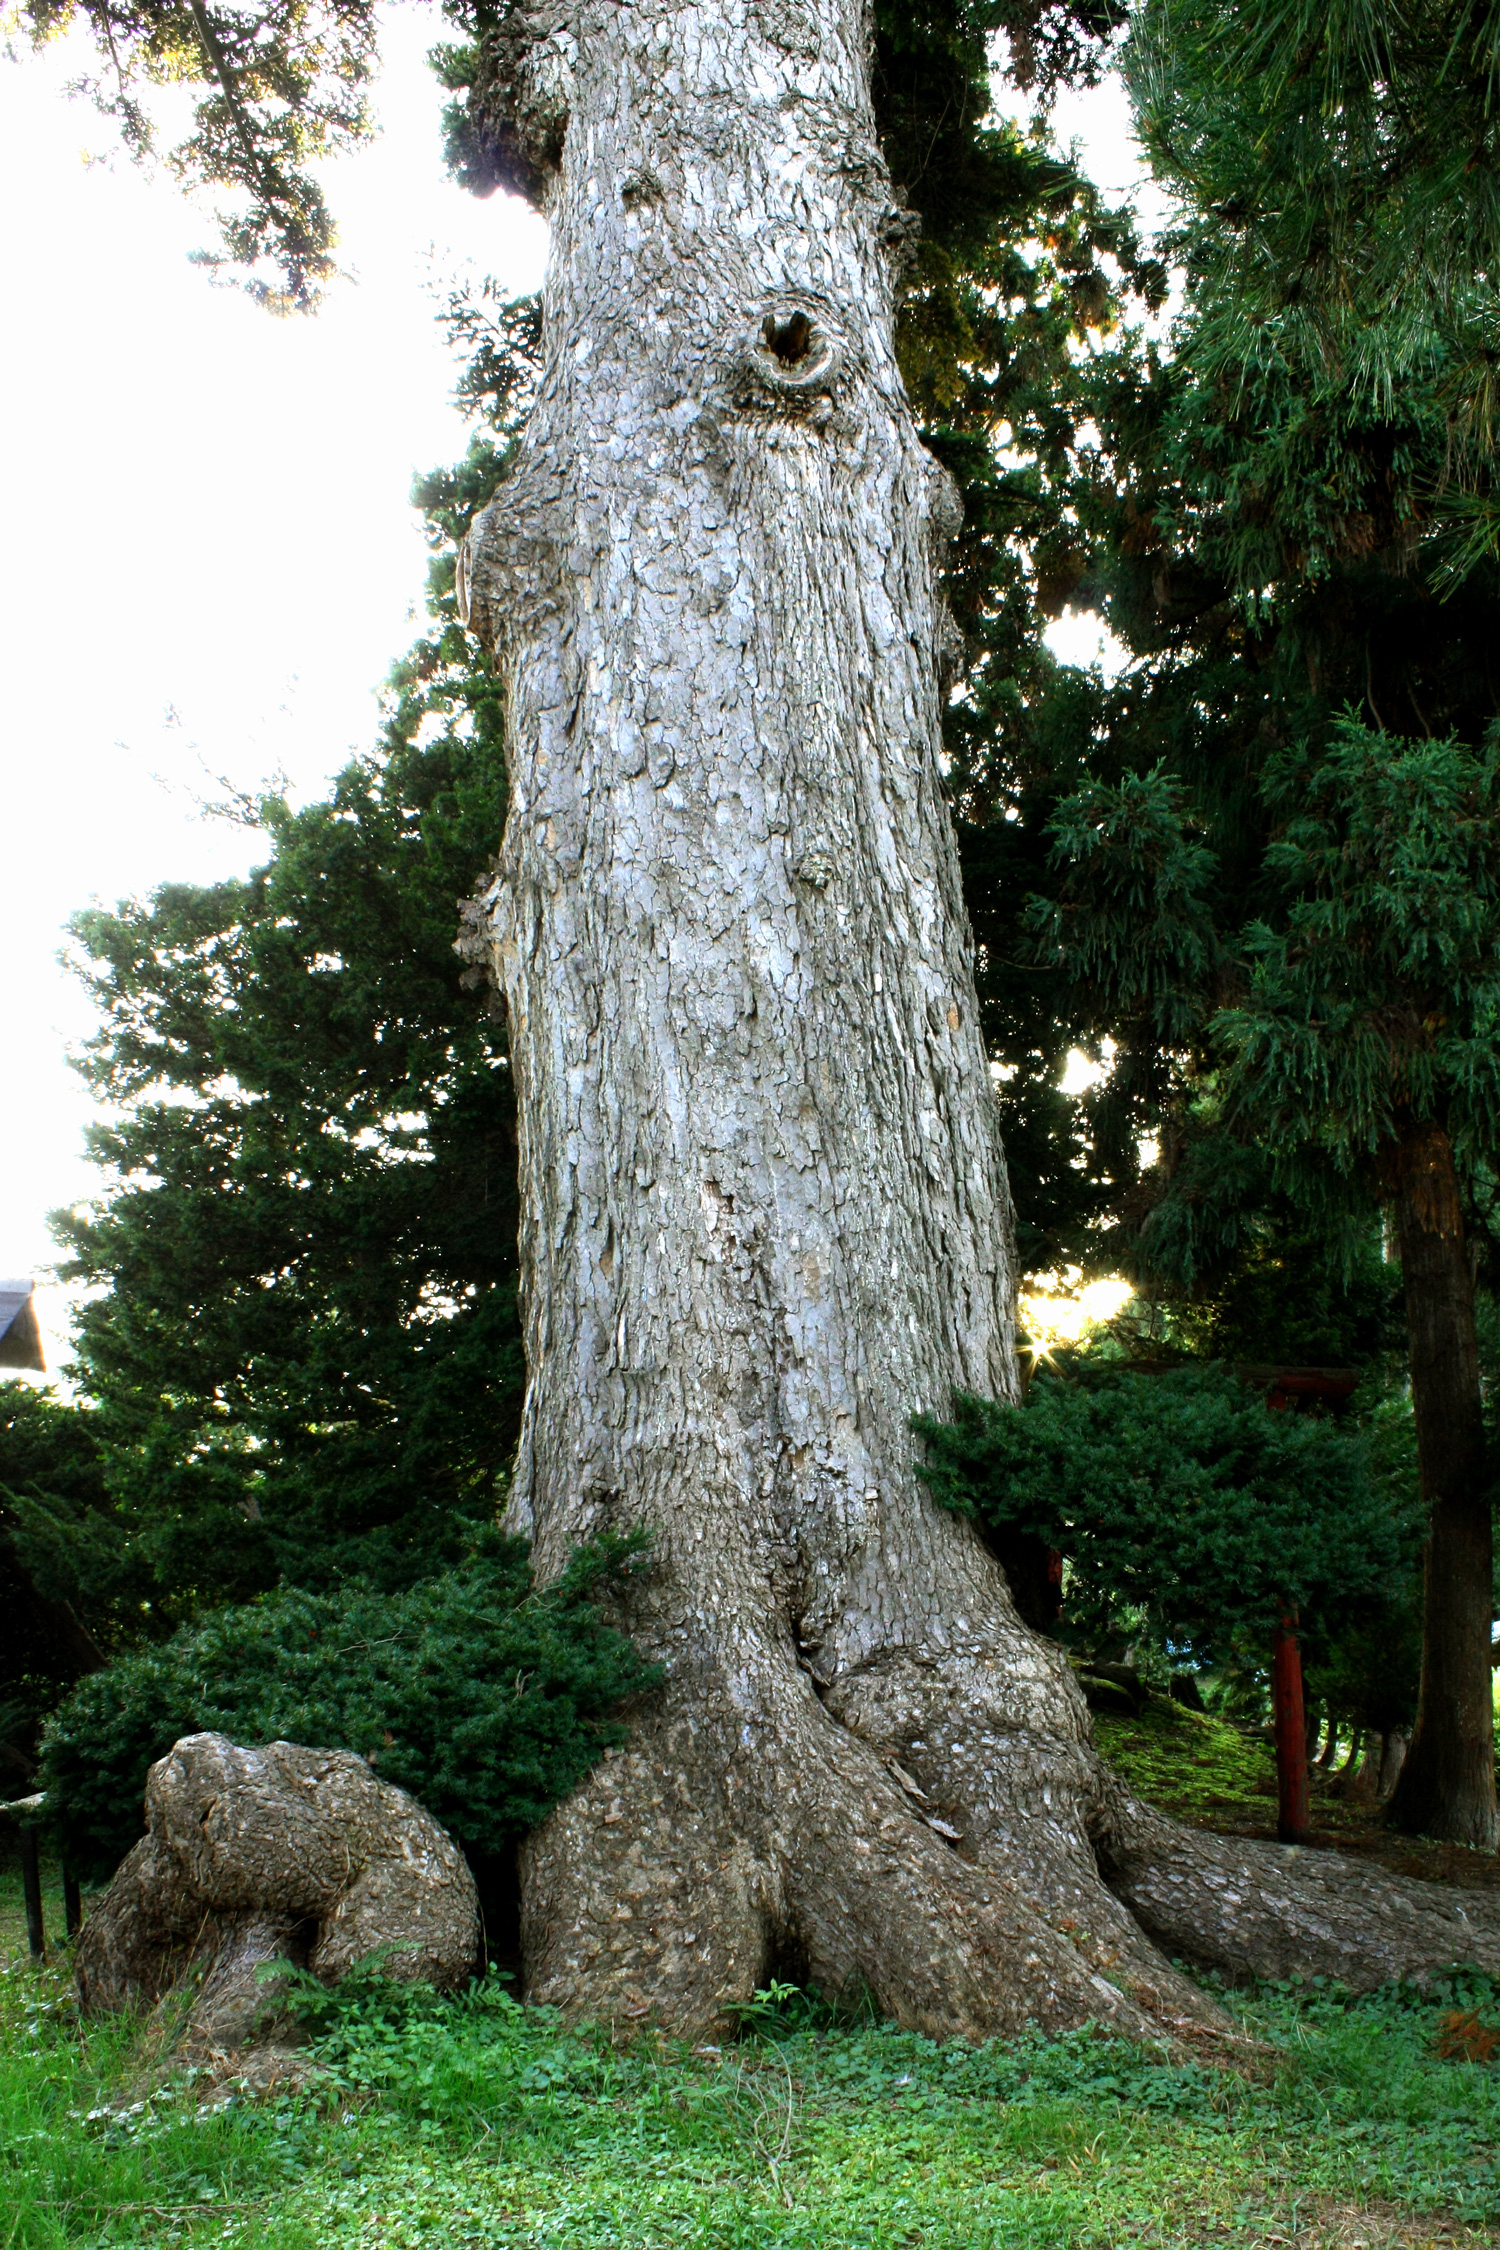 Todoroppo is Fir tree with 6 meters (20 ft)girth